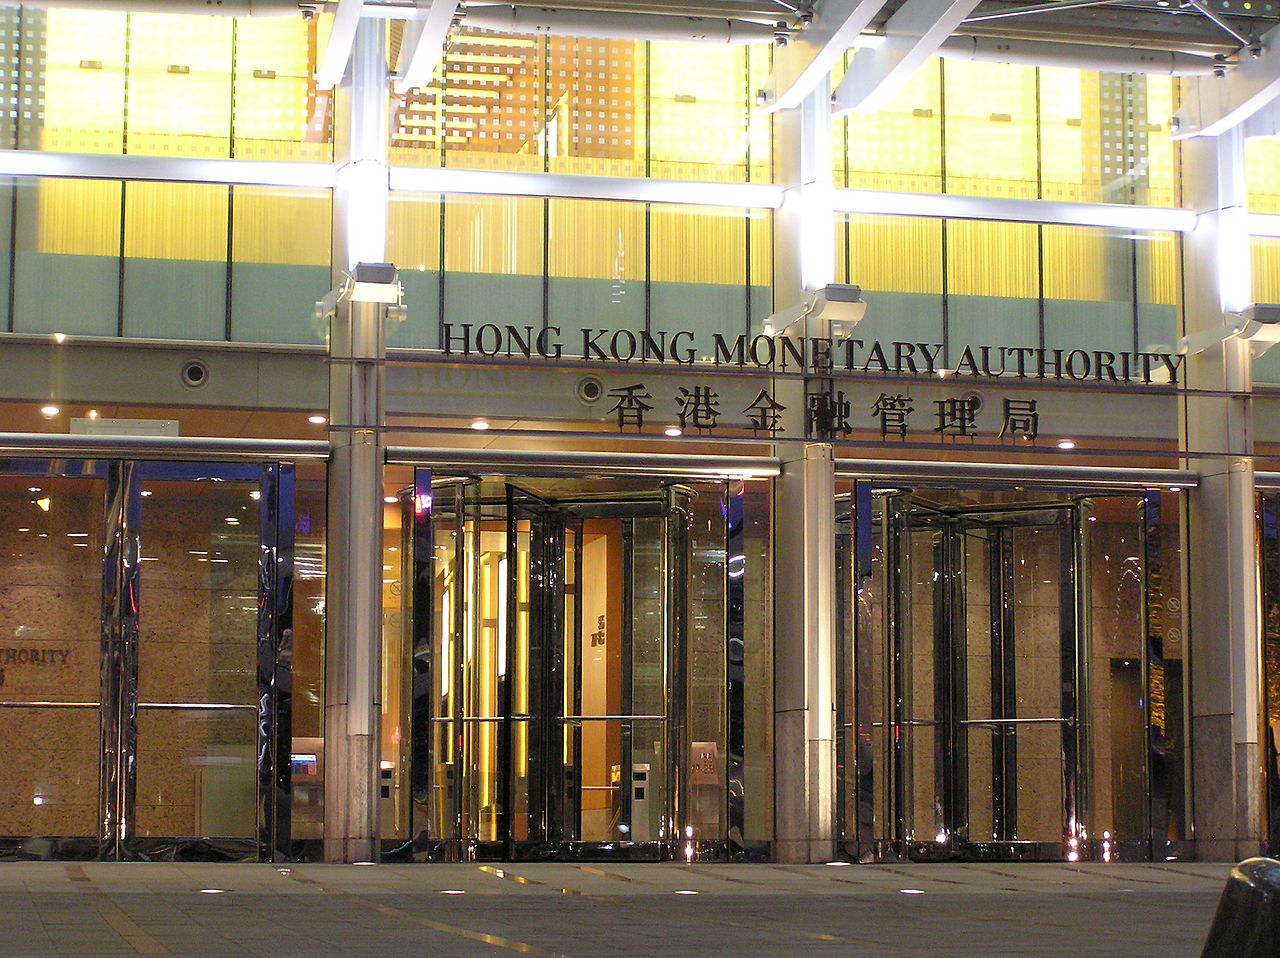 hong kong monetary authority (hkma)